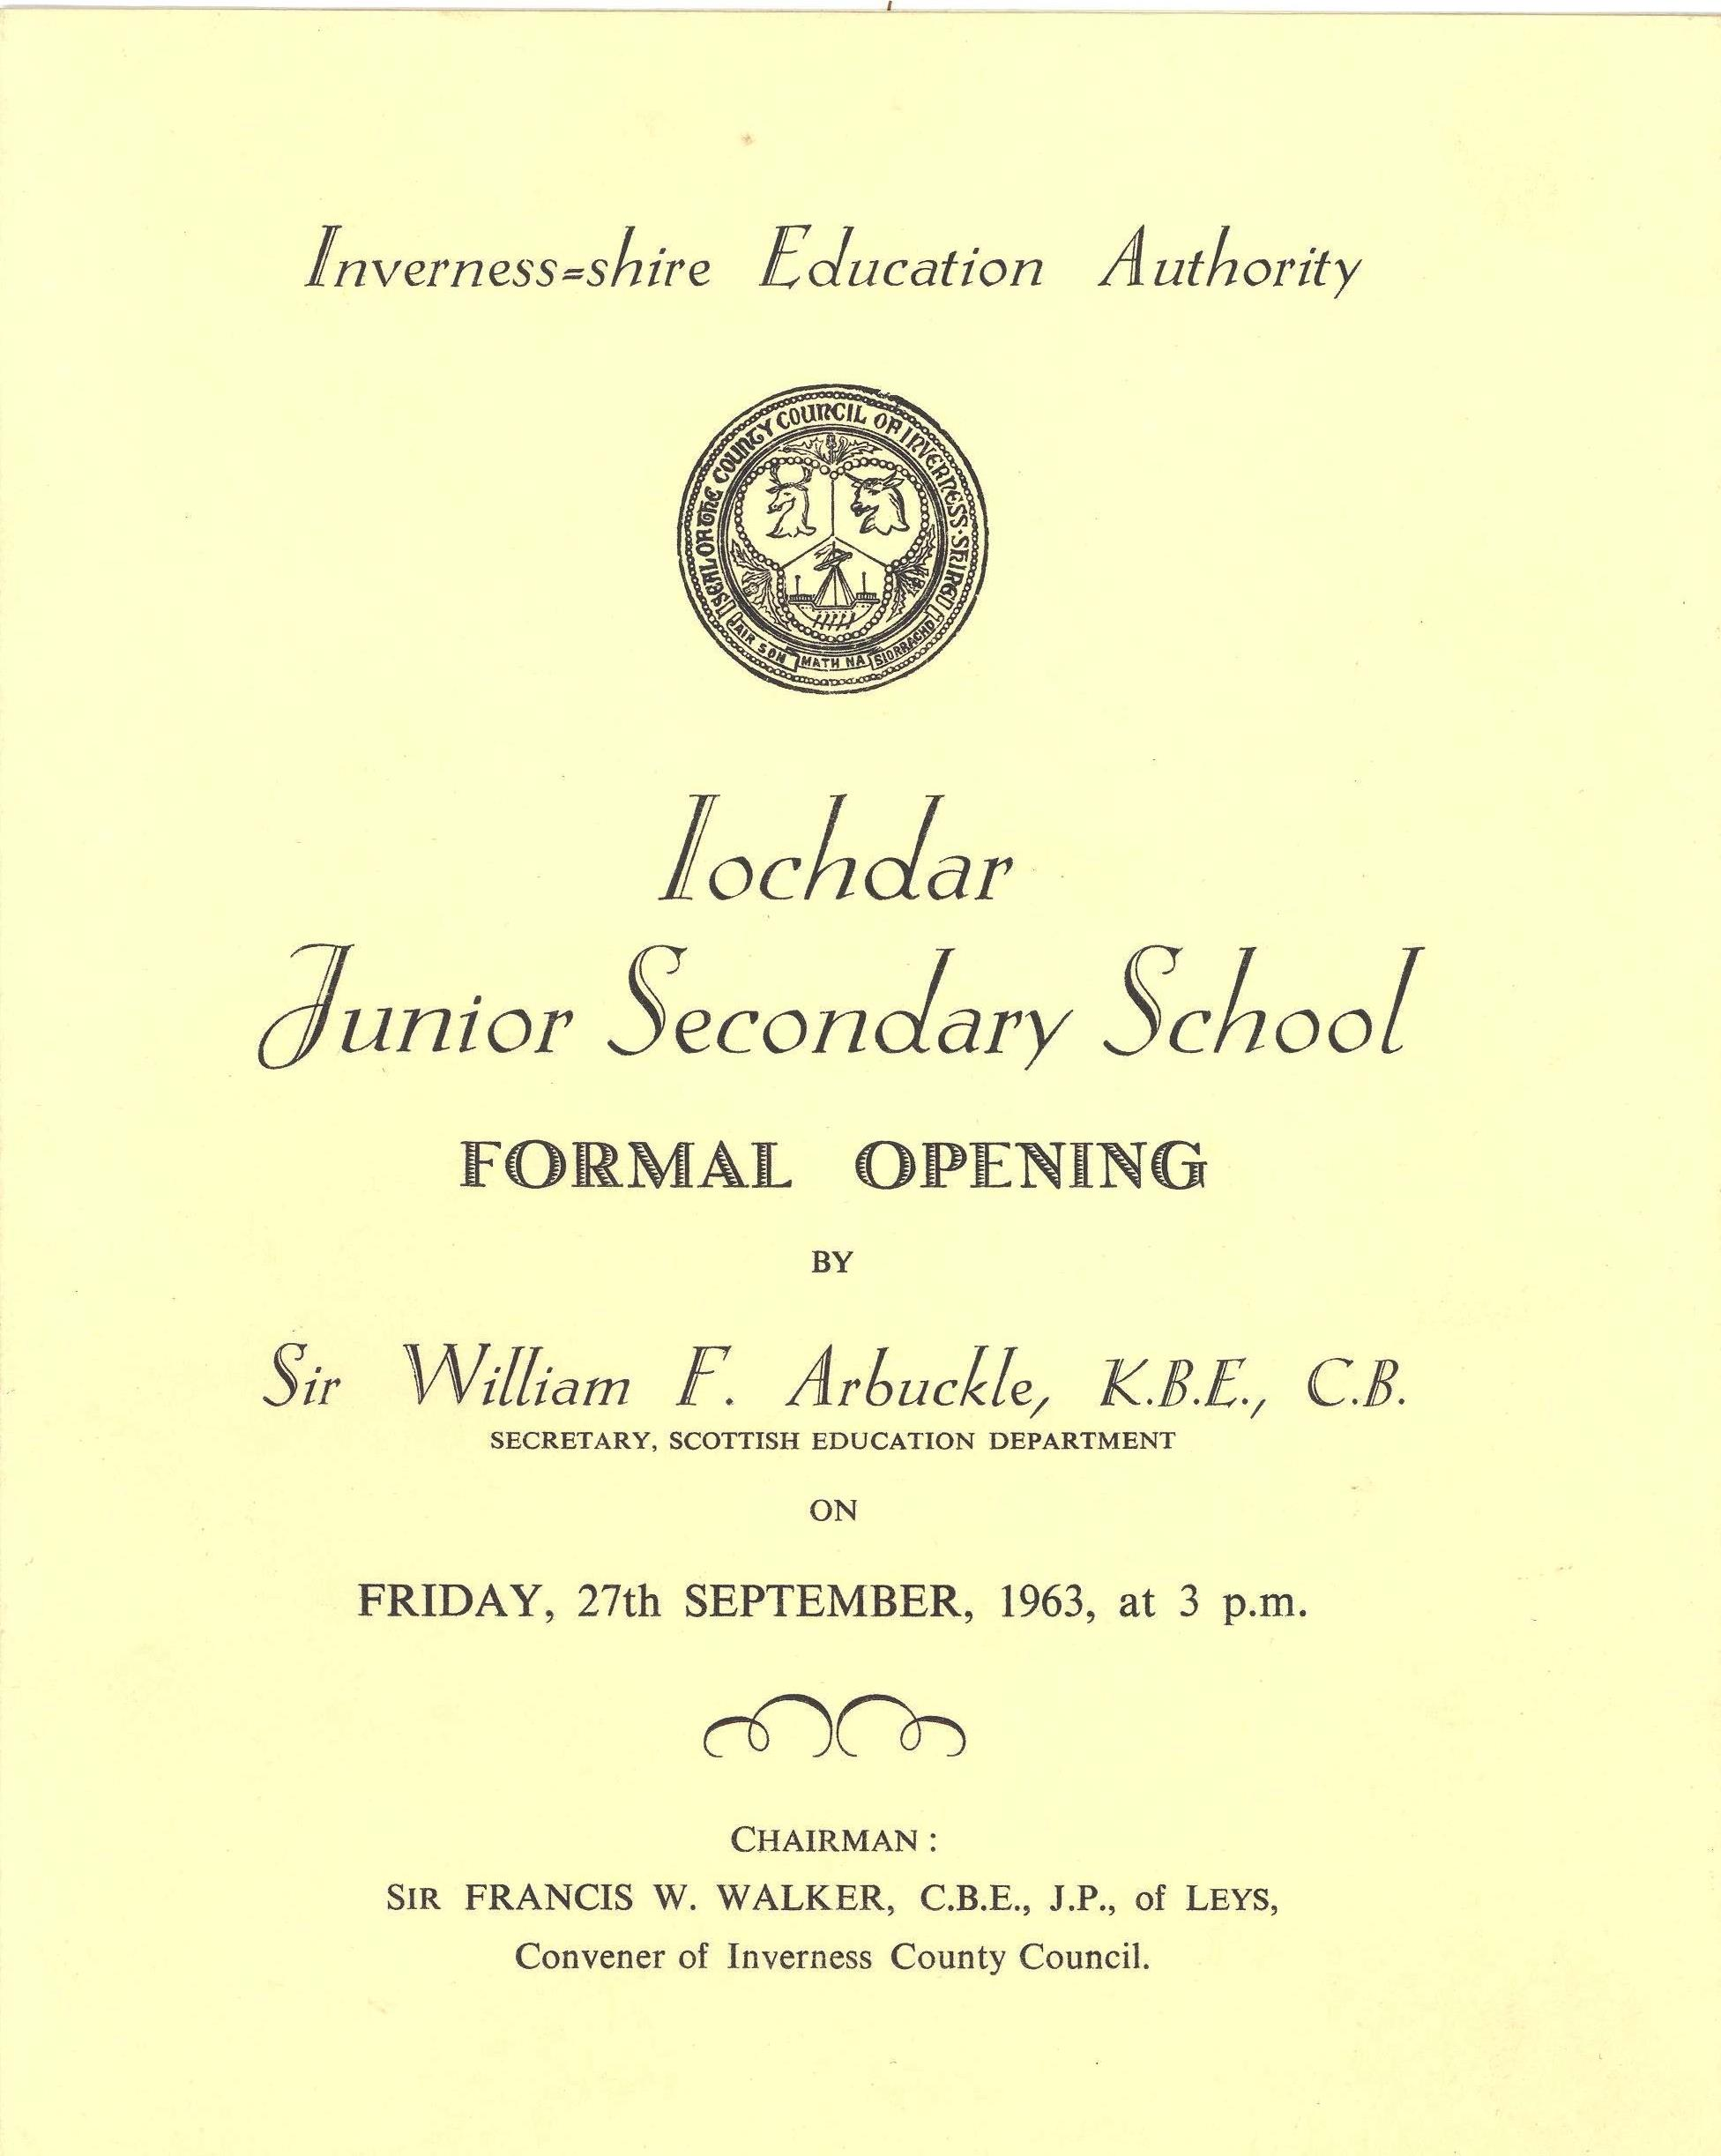 Opening ceremony booklet for Iochdar School September 1963